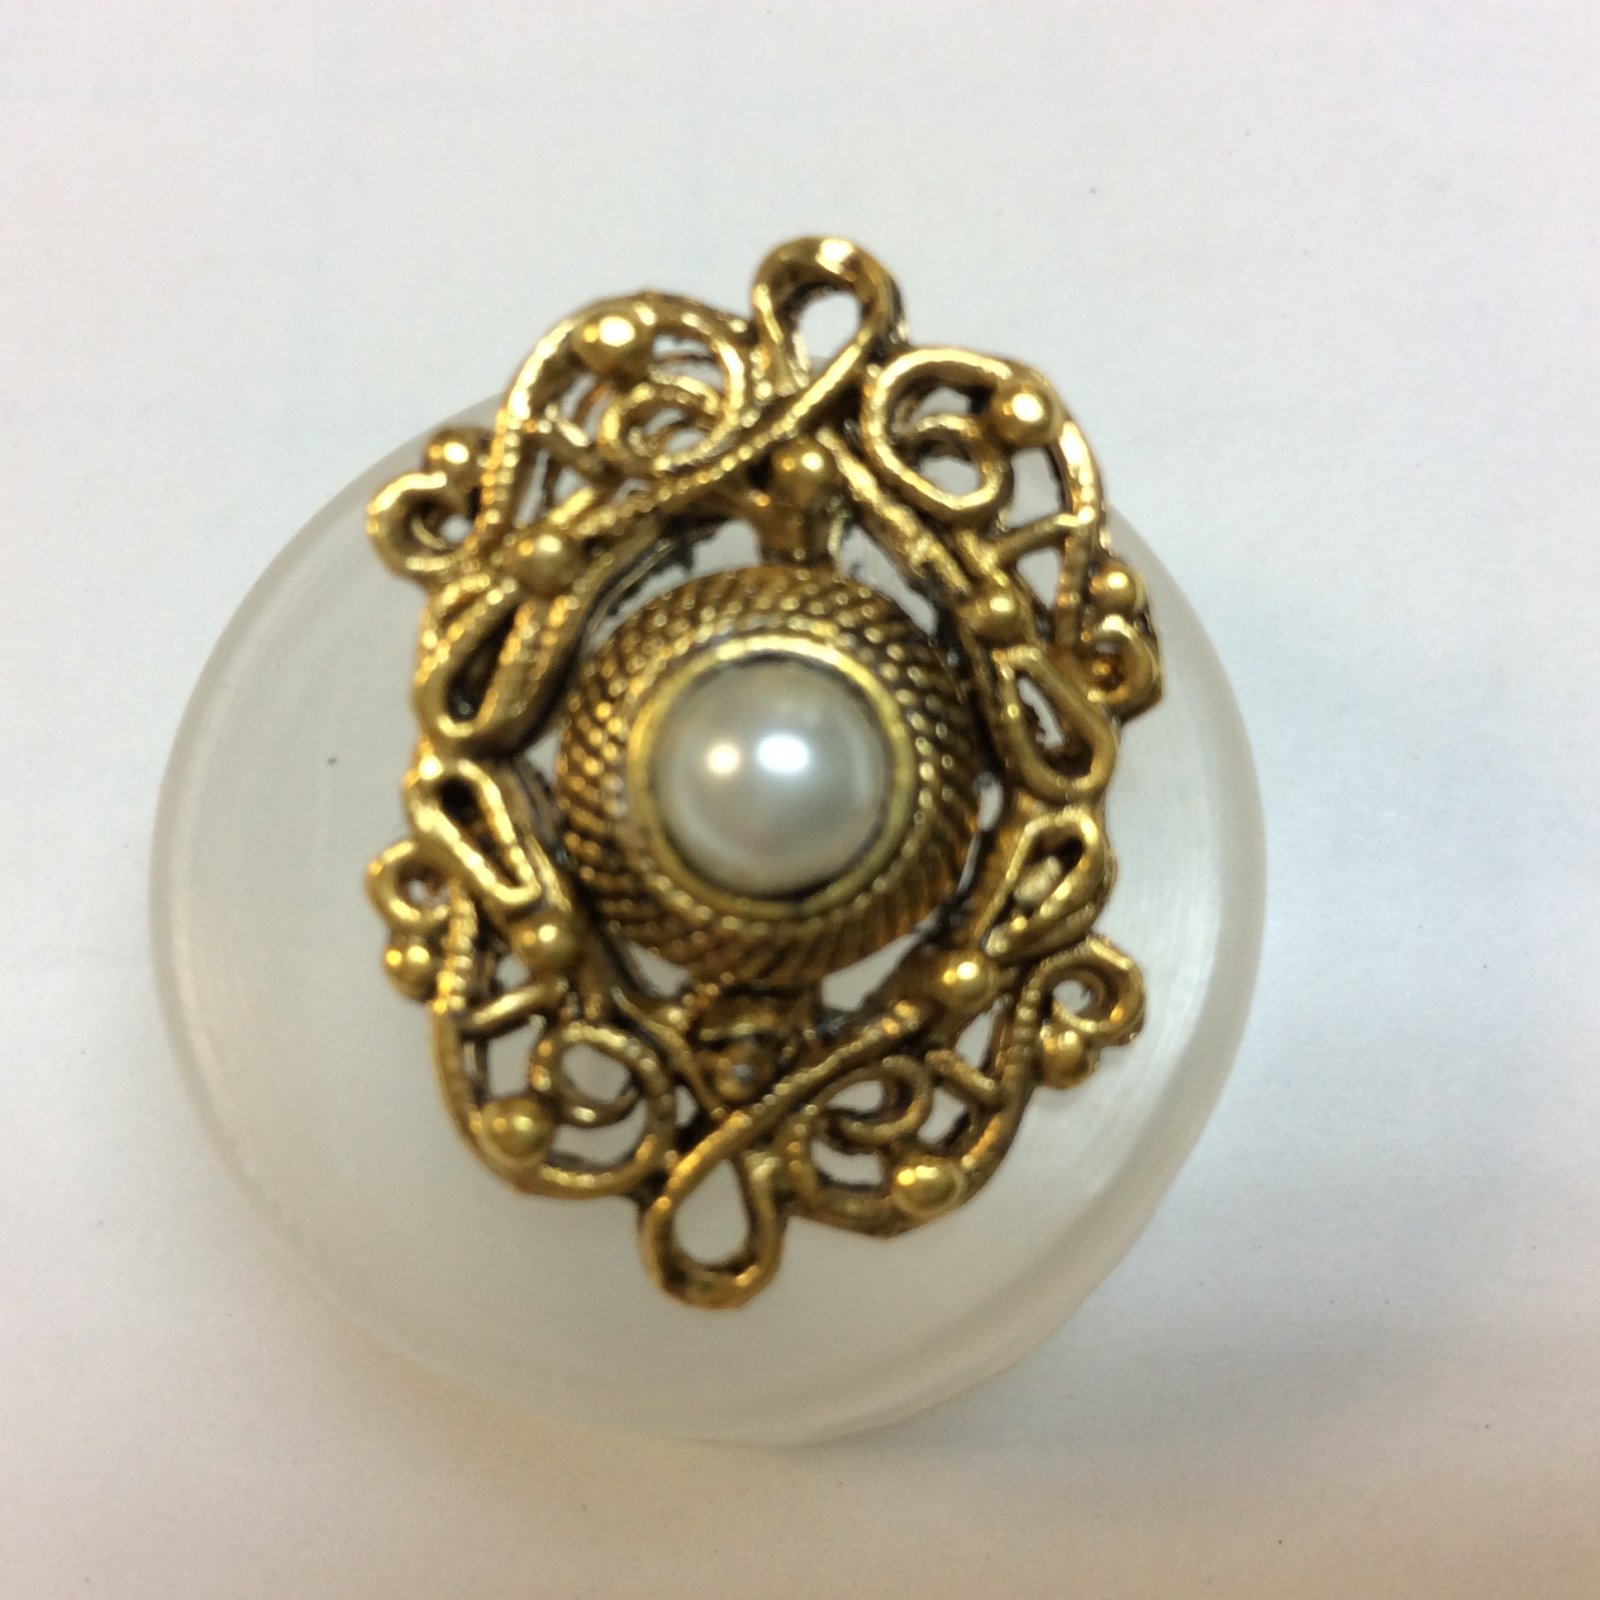 Ornate Gold Button with Pearl Center